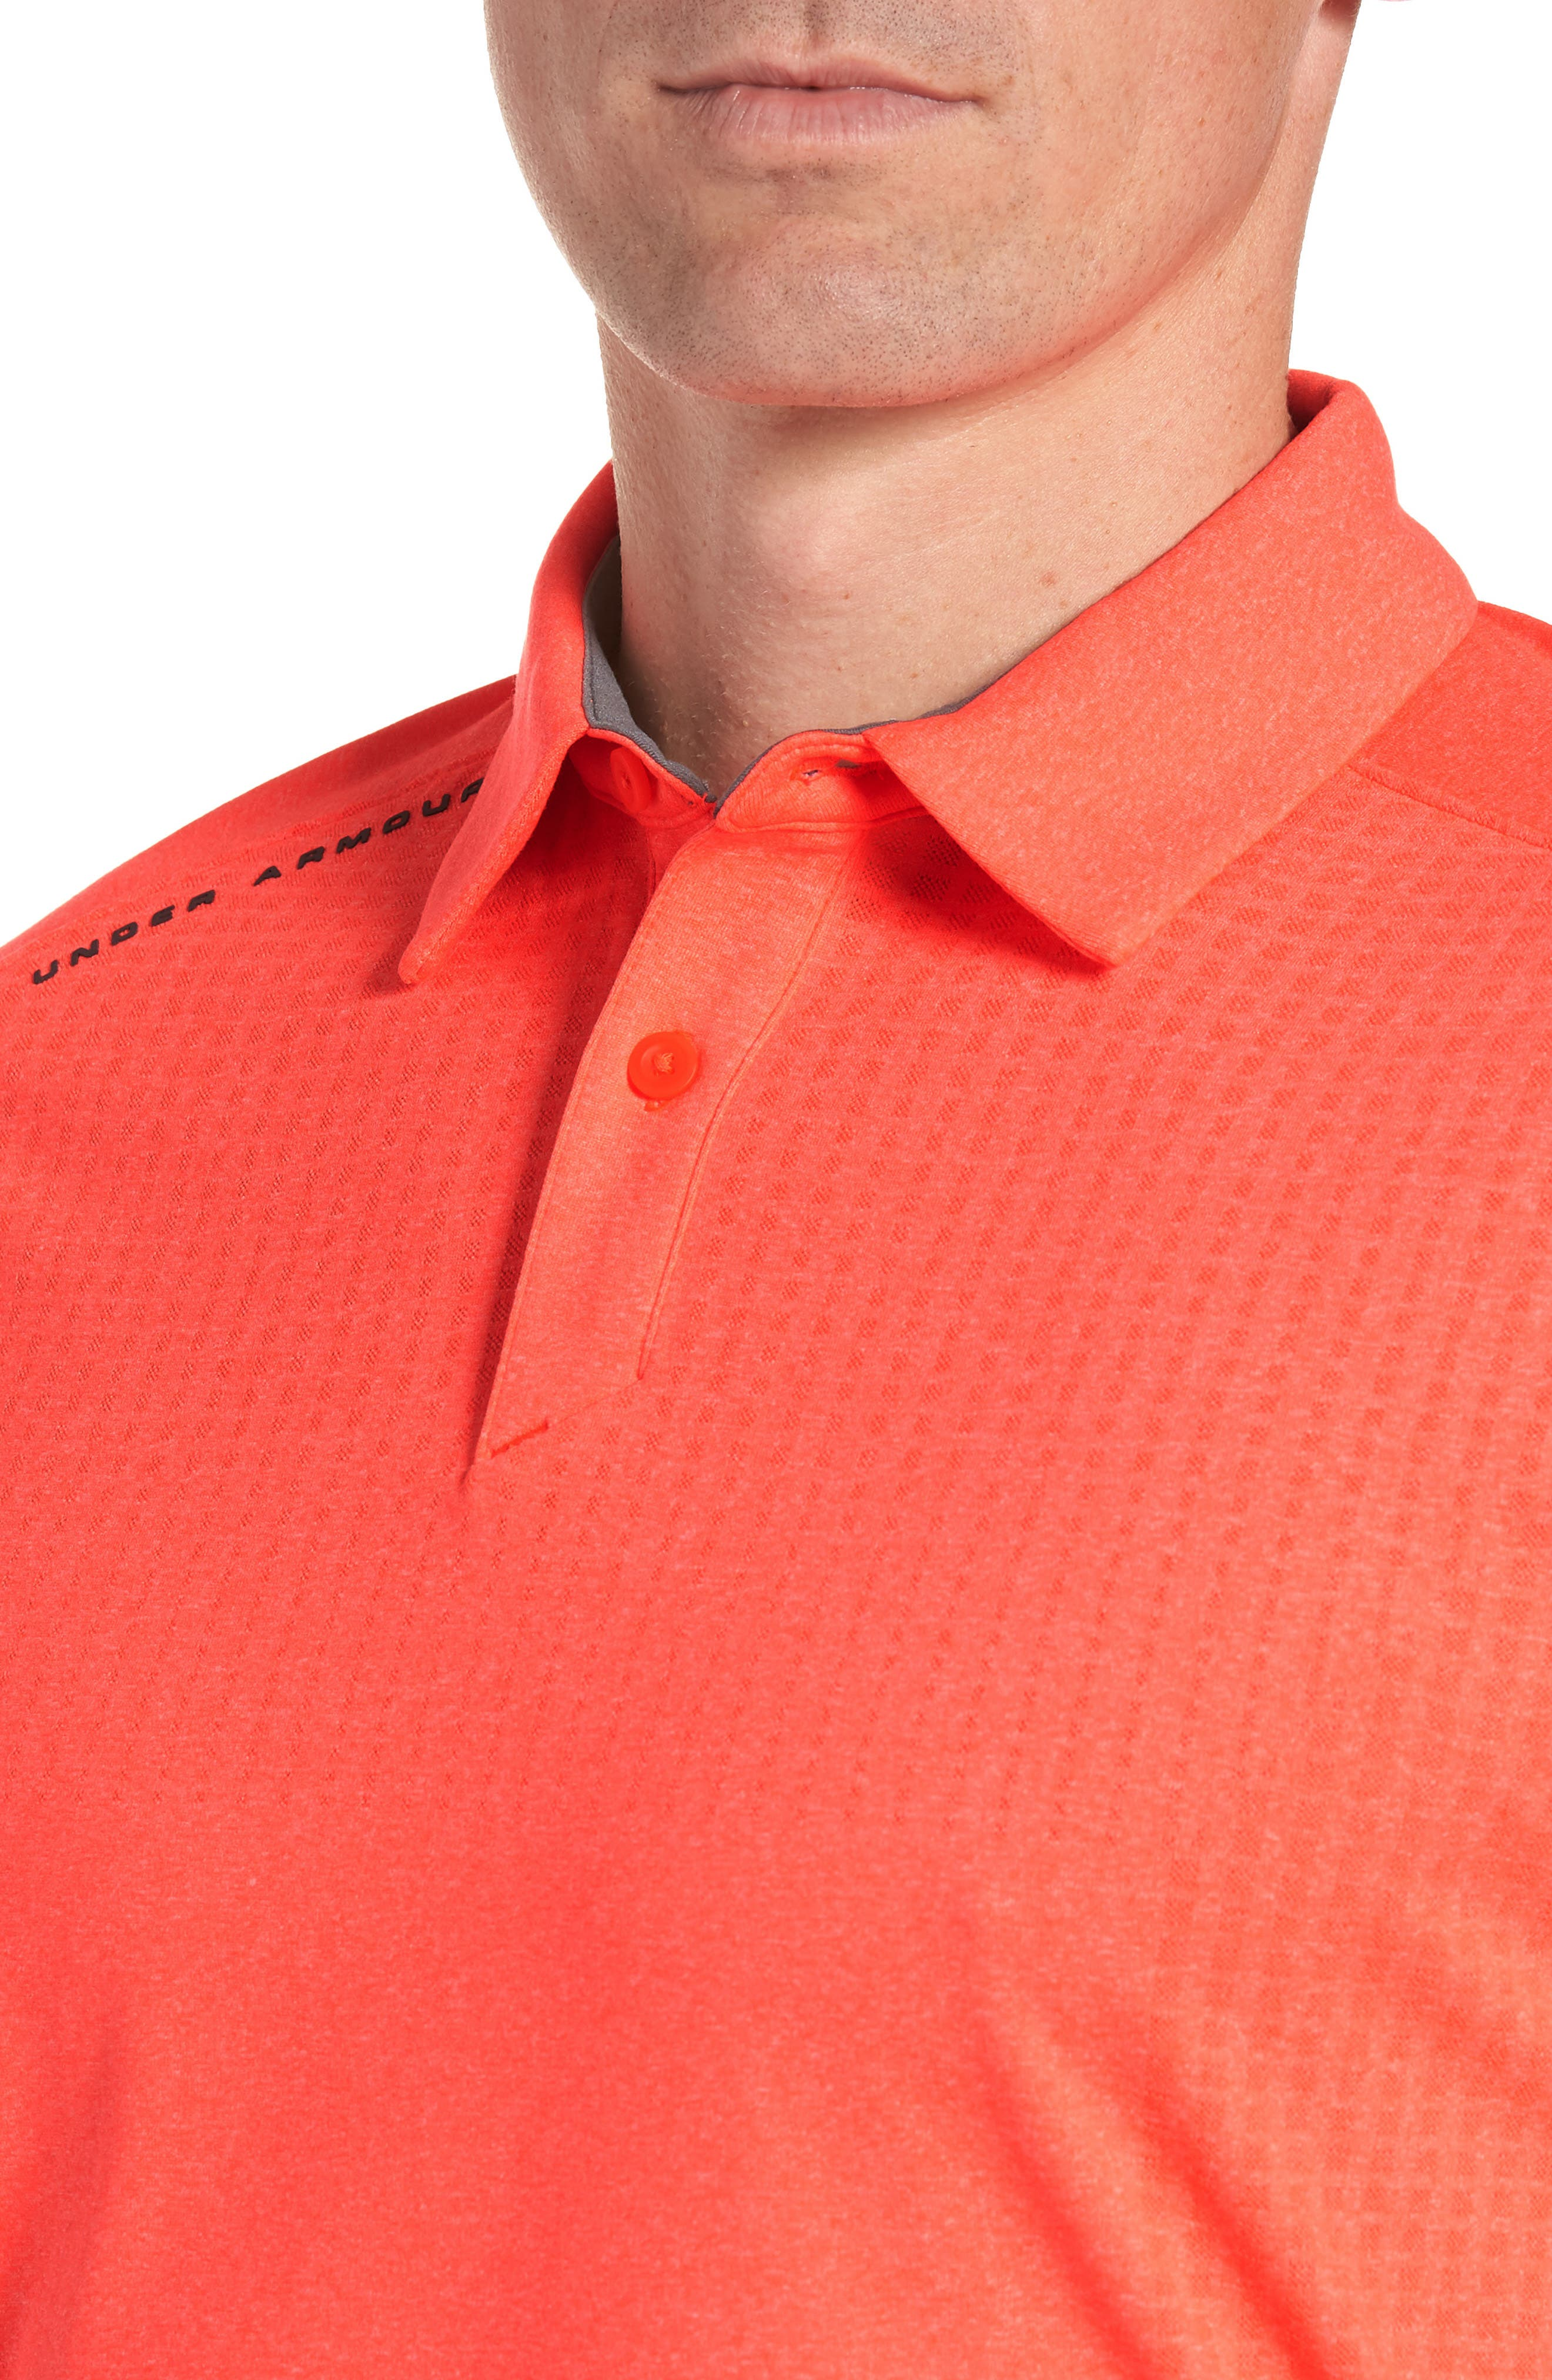 Threadborne Outer Glow Regular Fit Polo Shirt,                             Alternate thumbnail 4, color,                             NEON CORAL LIGHT/ HEATHER